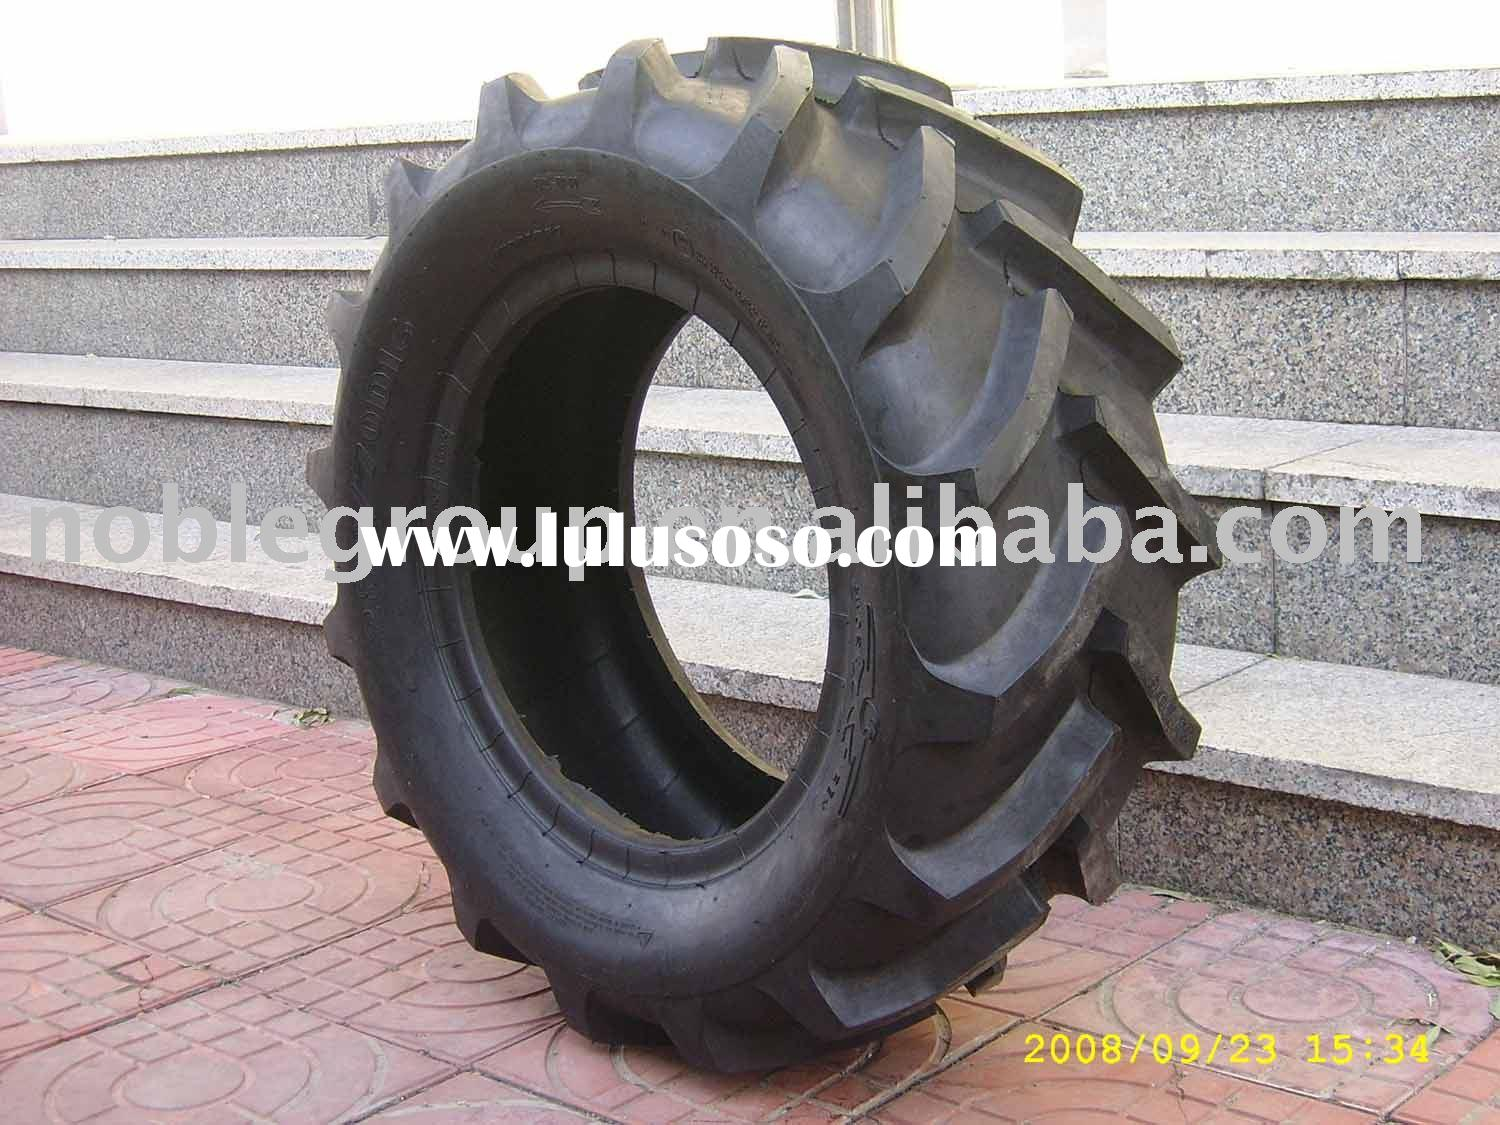 Tractor Tire Boots : Tractor tire boot repair